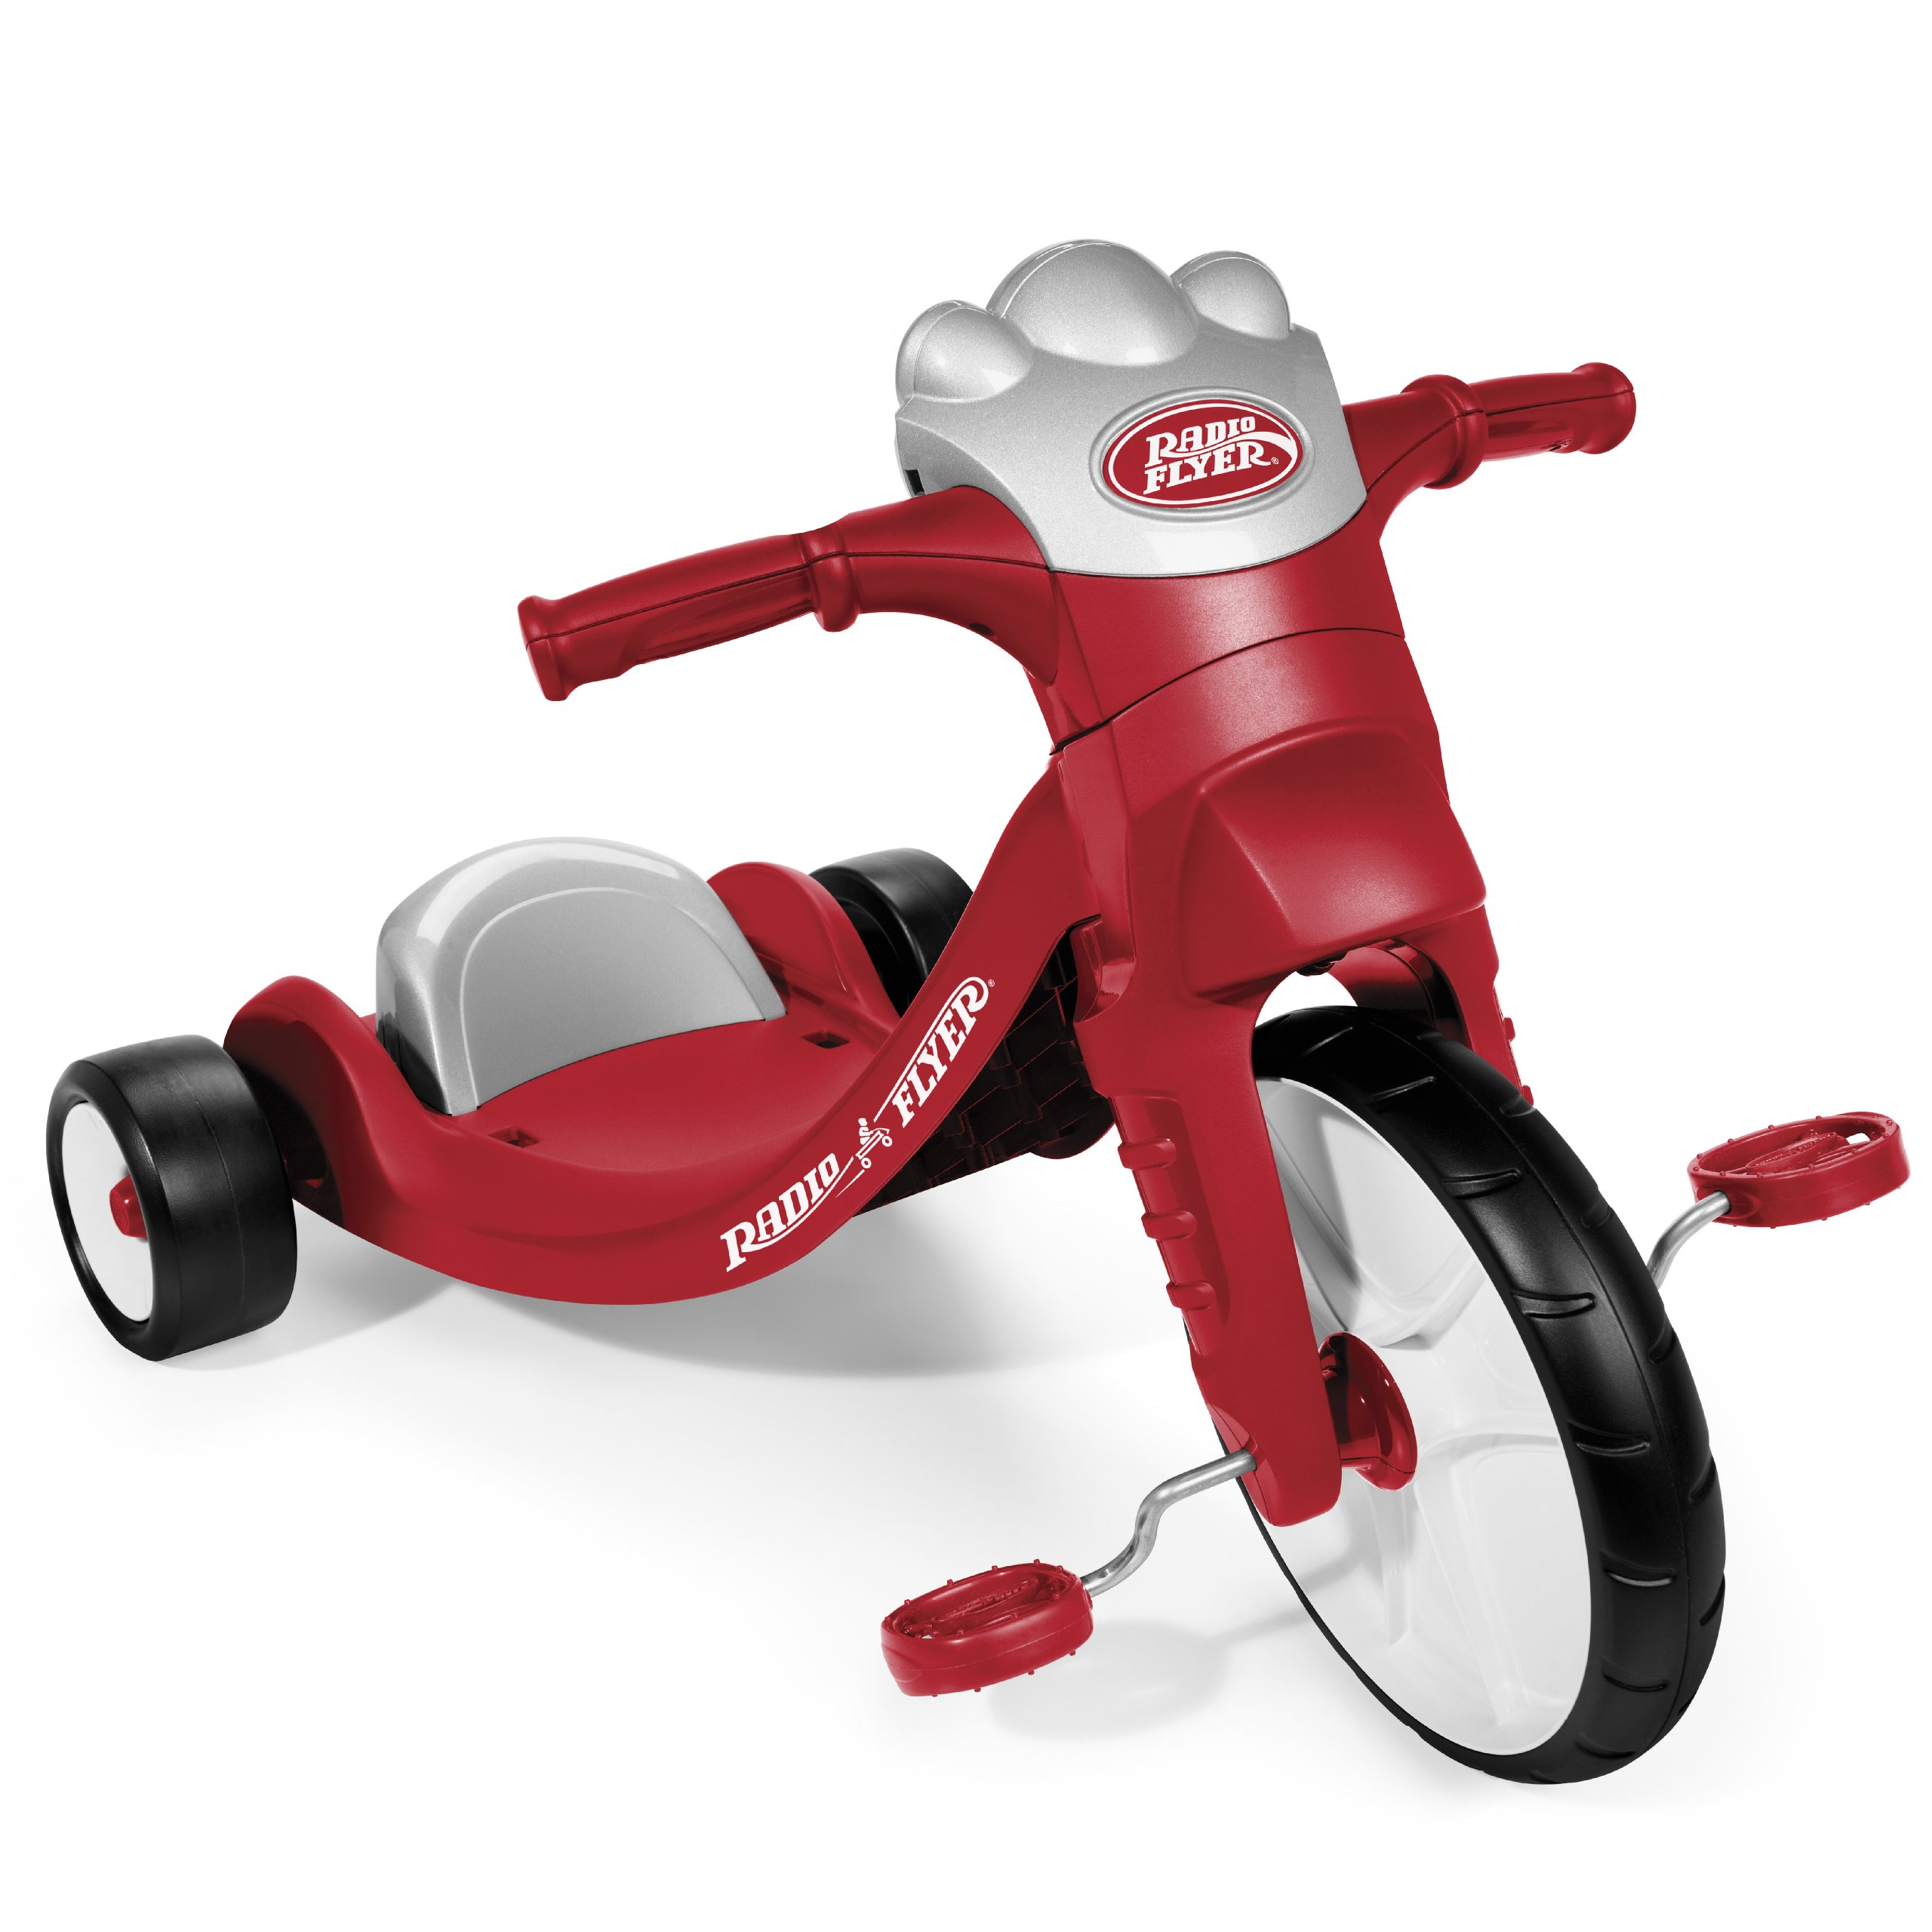 Radio Flyer Lights and Sounds Racer, colors may vary by Radio Flyer